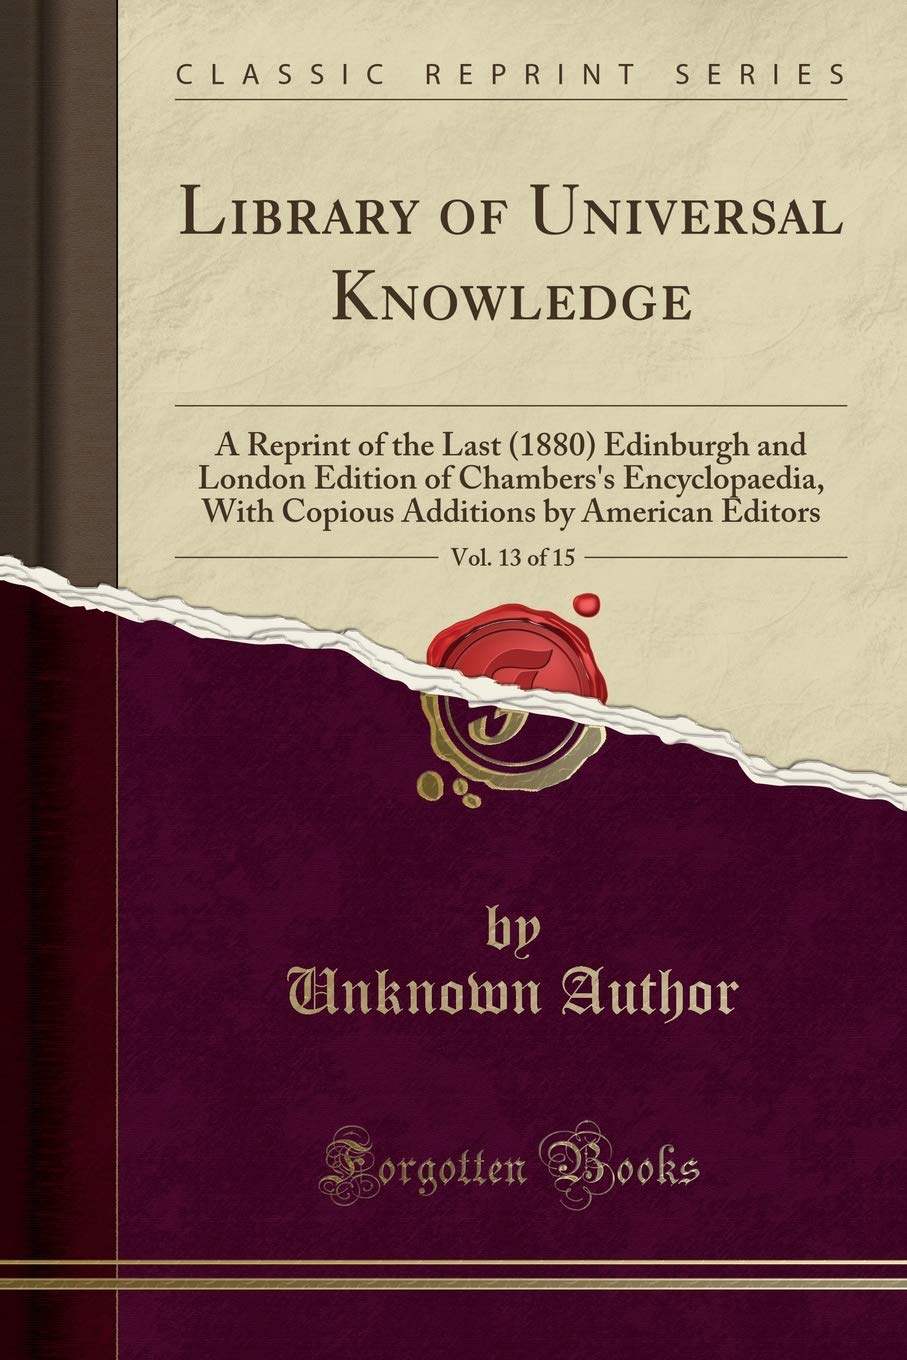 Library of Universal Knowledge, Vol. 13 of 15: A Reprint of the Last (1880) Edinburgh and London Edition of Chambers's Encyclopaedia, With Copious Additions by American Editors (Classic Reprint) PDF